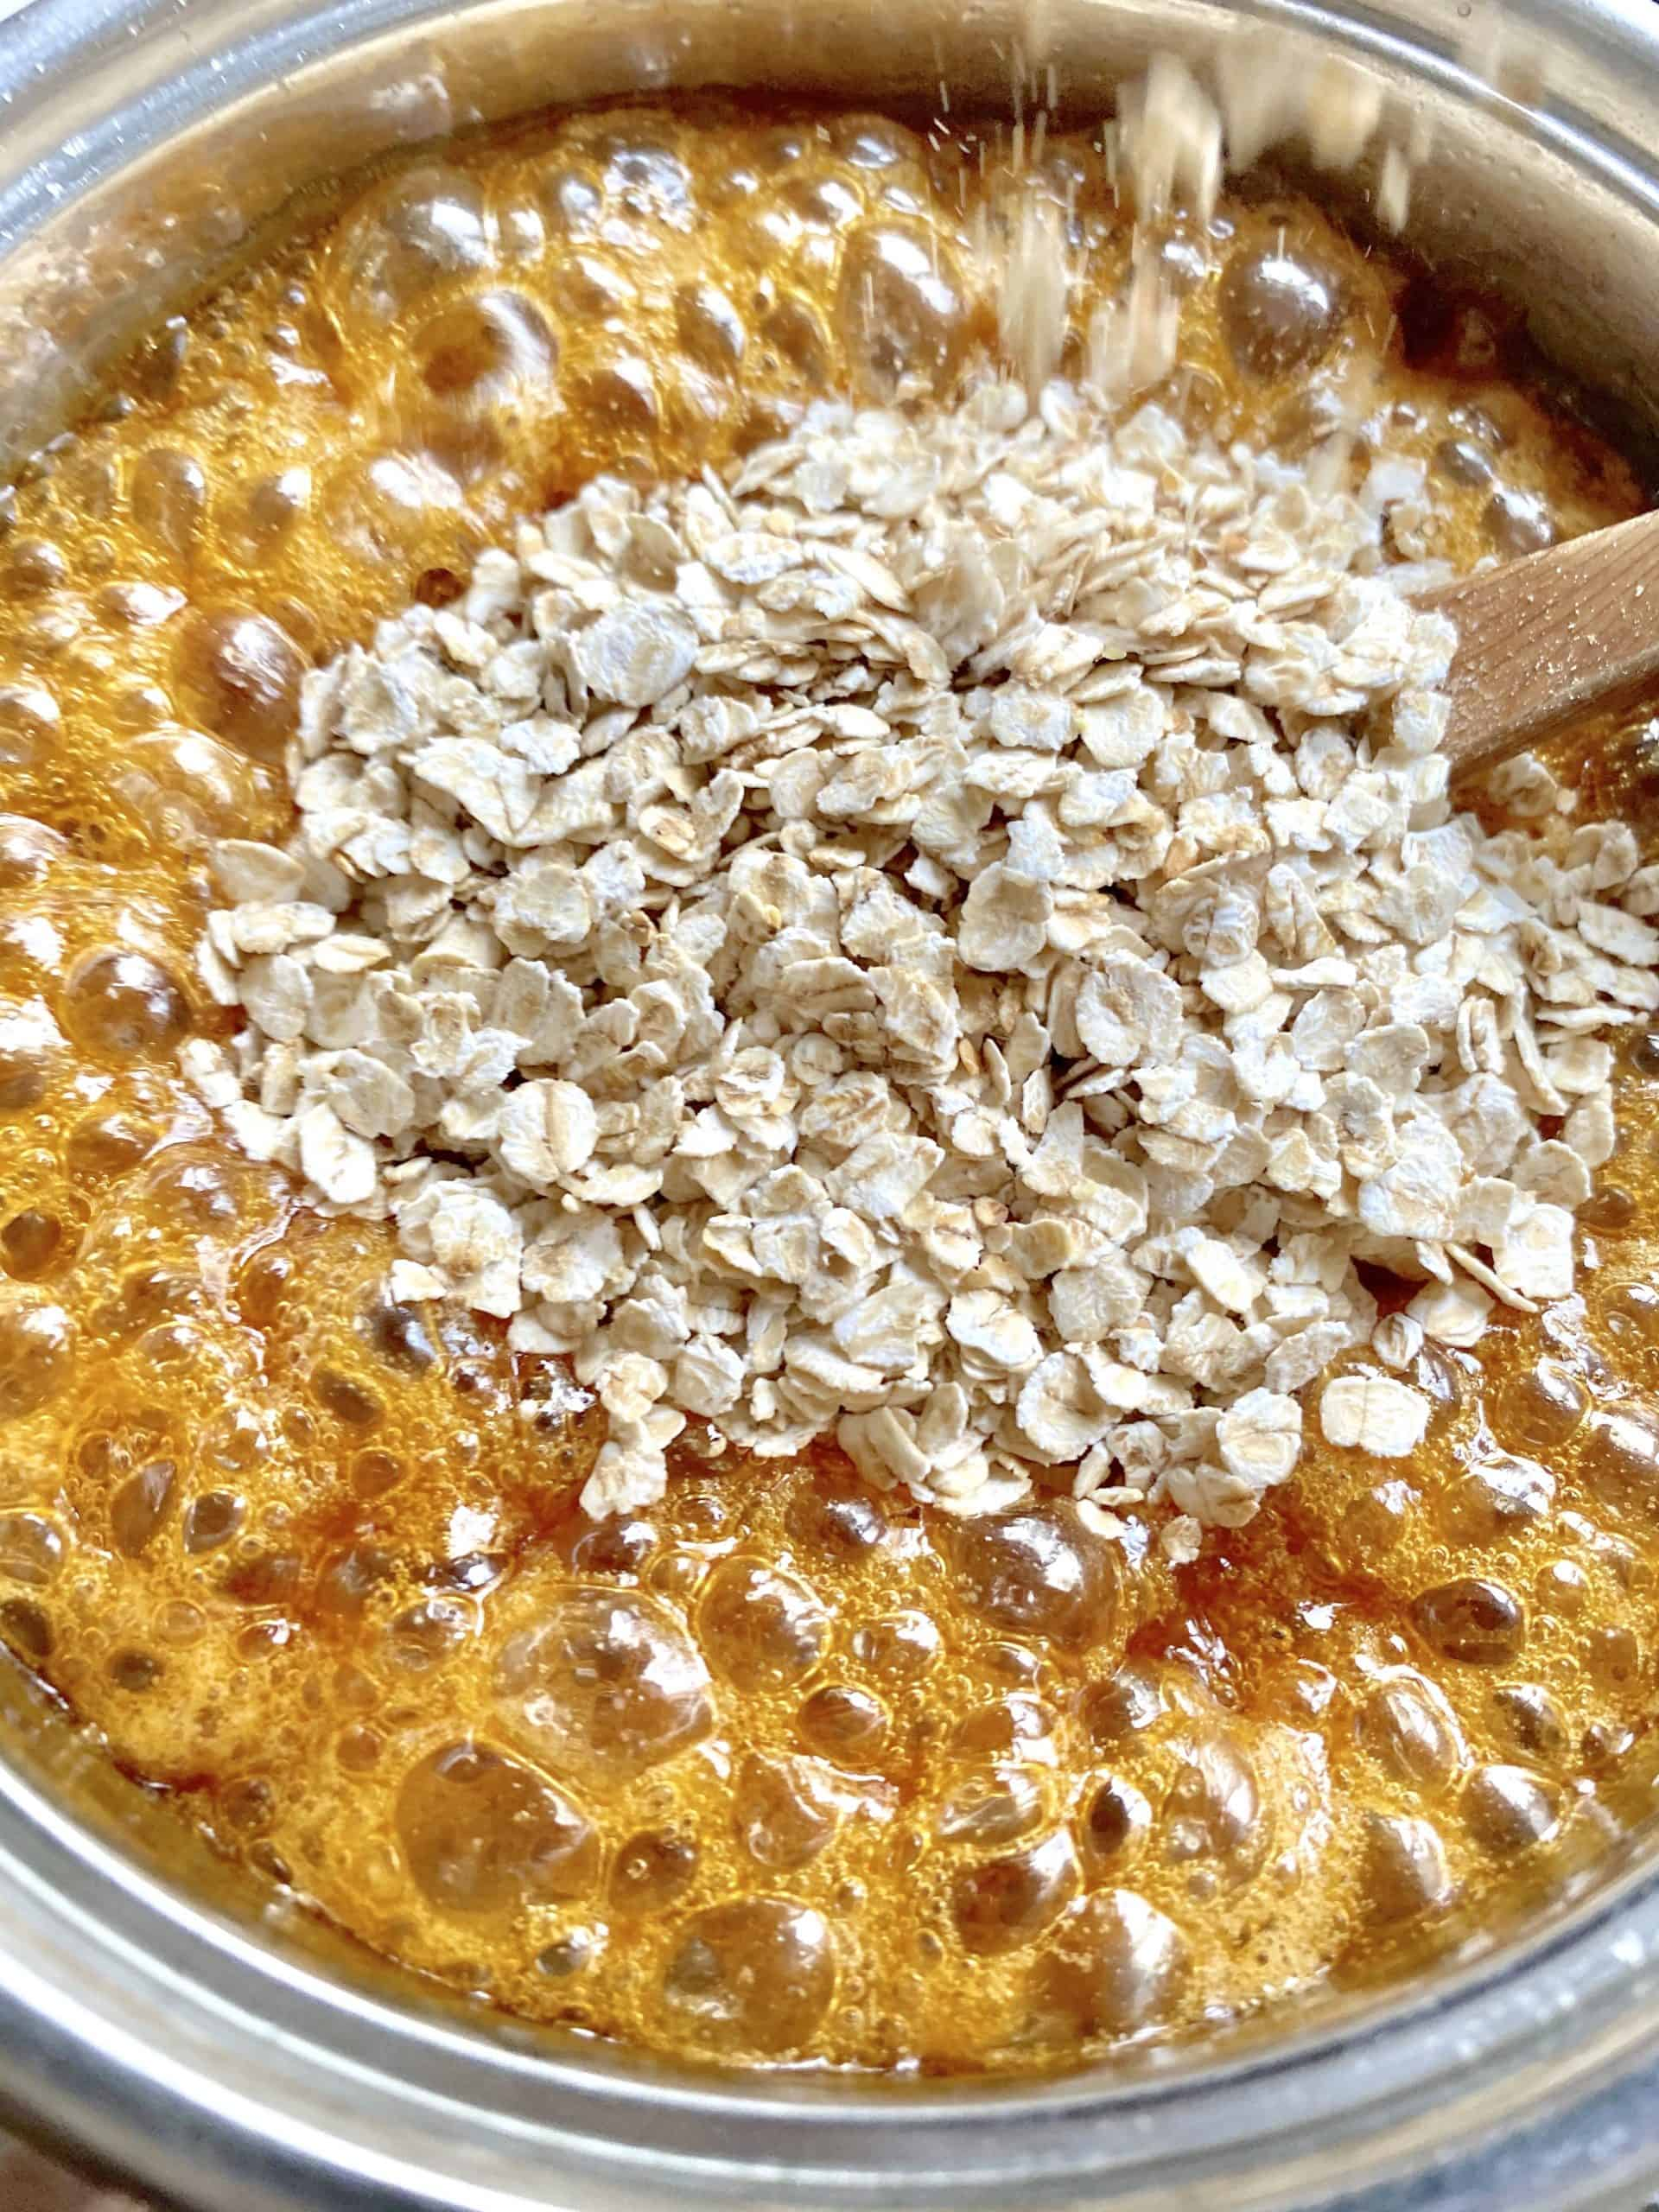 adding oats to bubbling sugar syrup